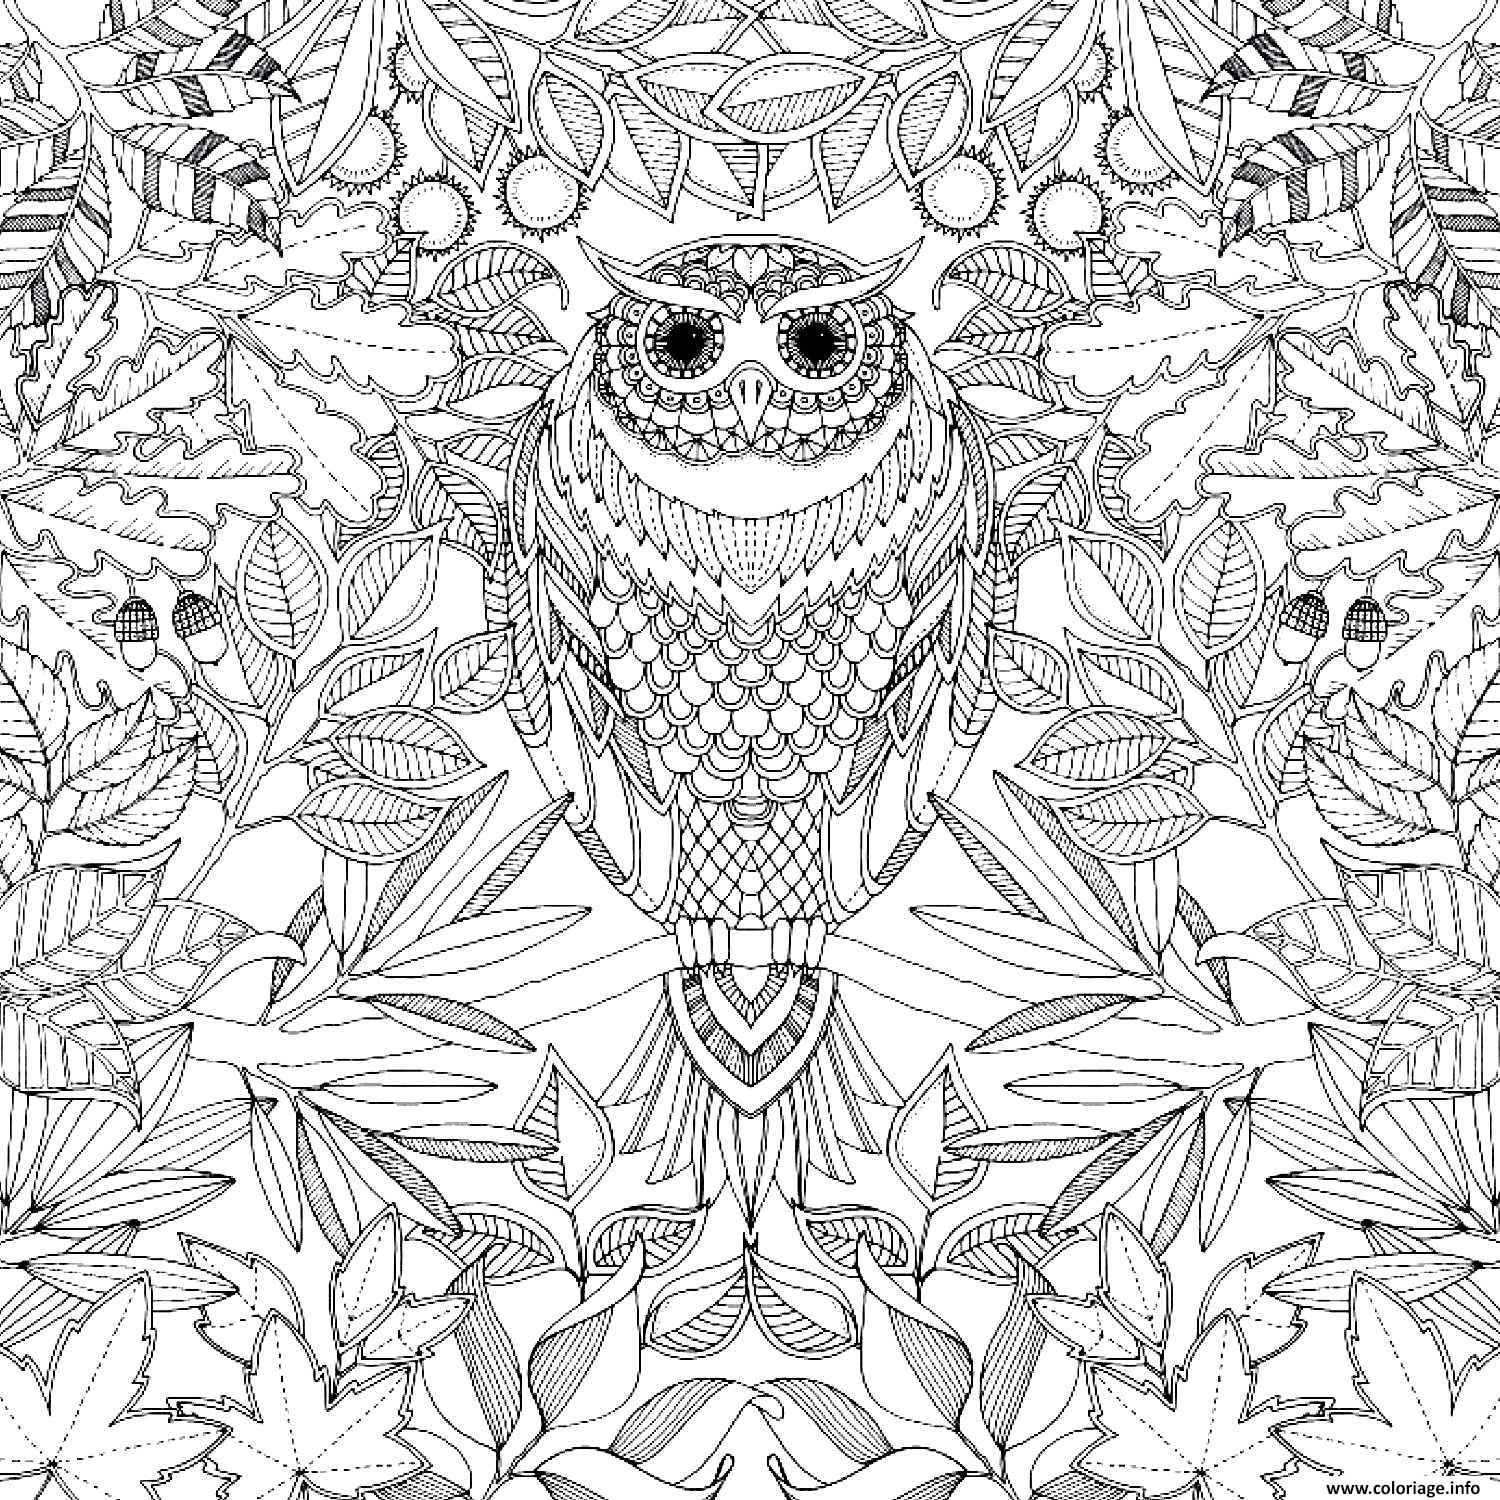 Coloriage art therapie 45 dessin - Coloriage art ...